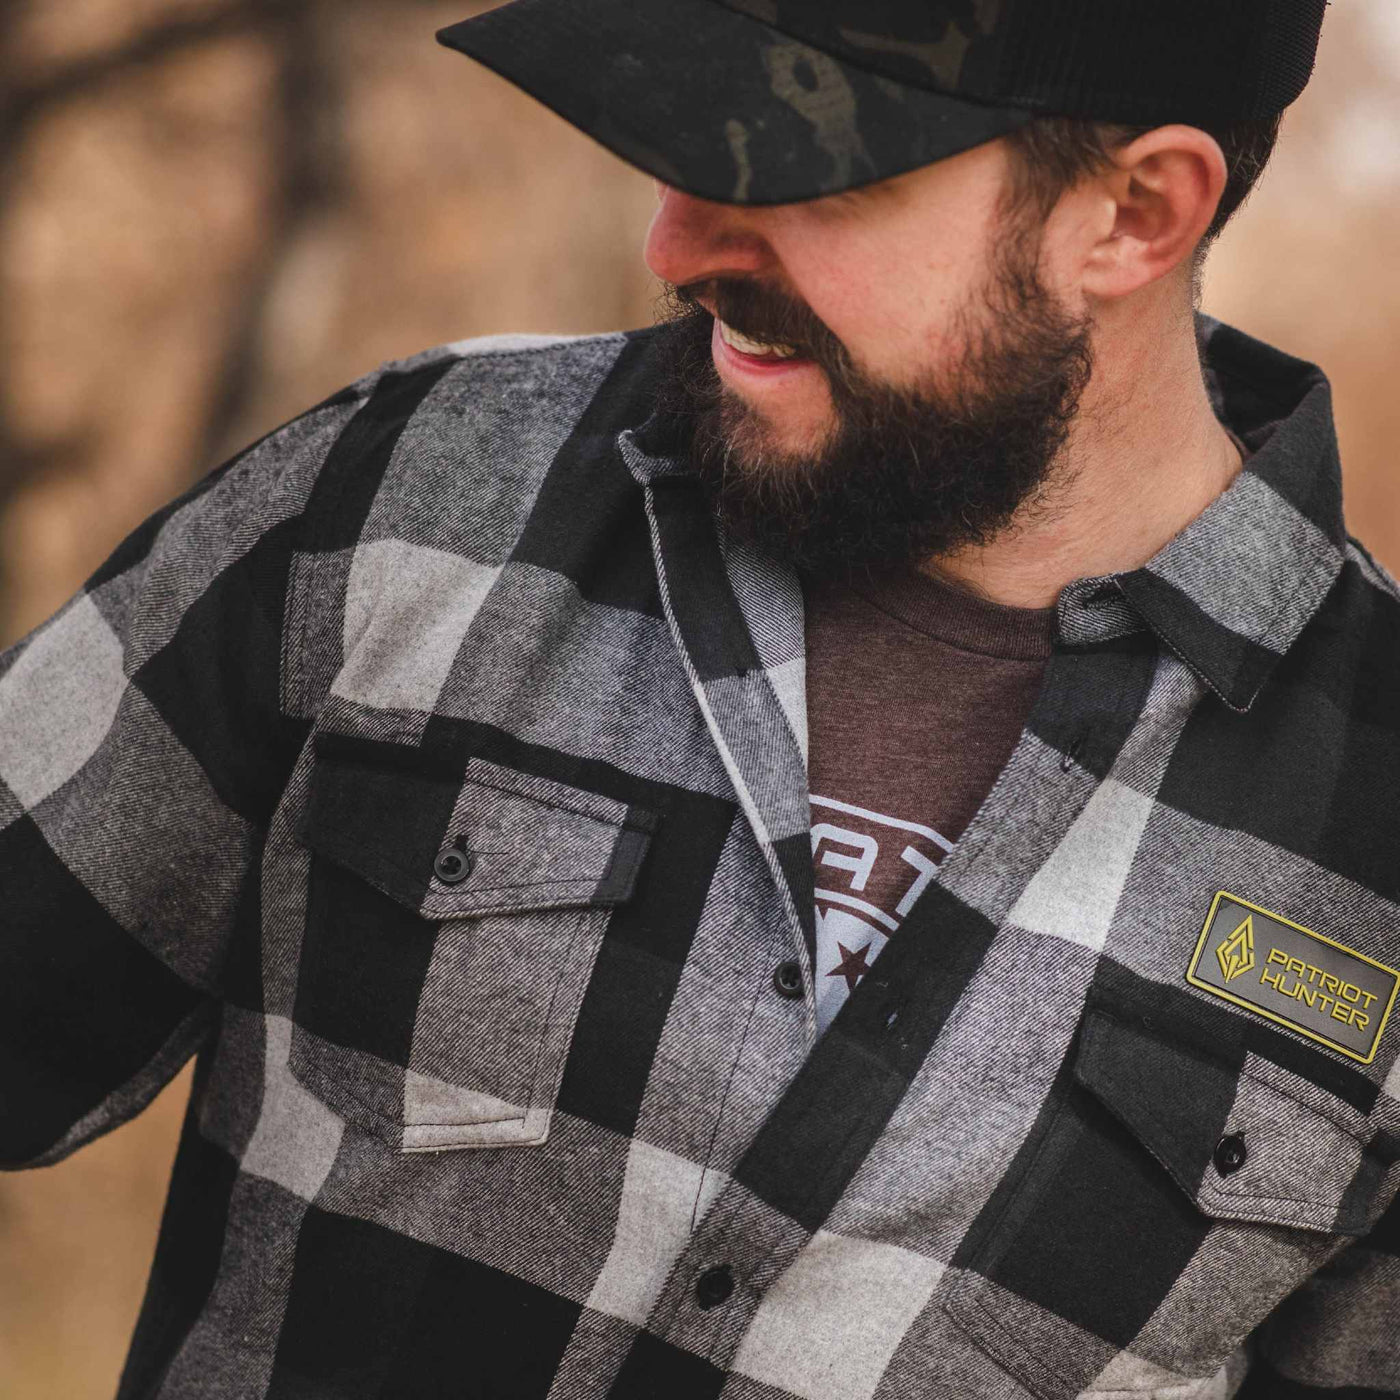 Man in grey and black flannel shirt